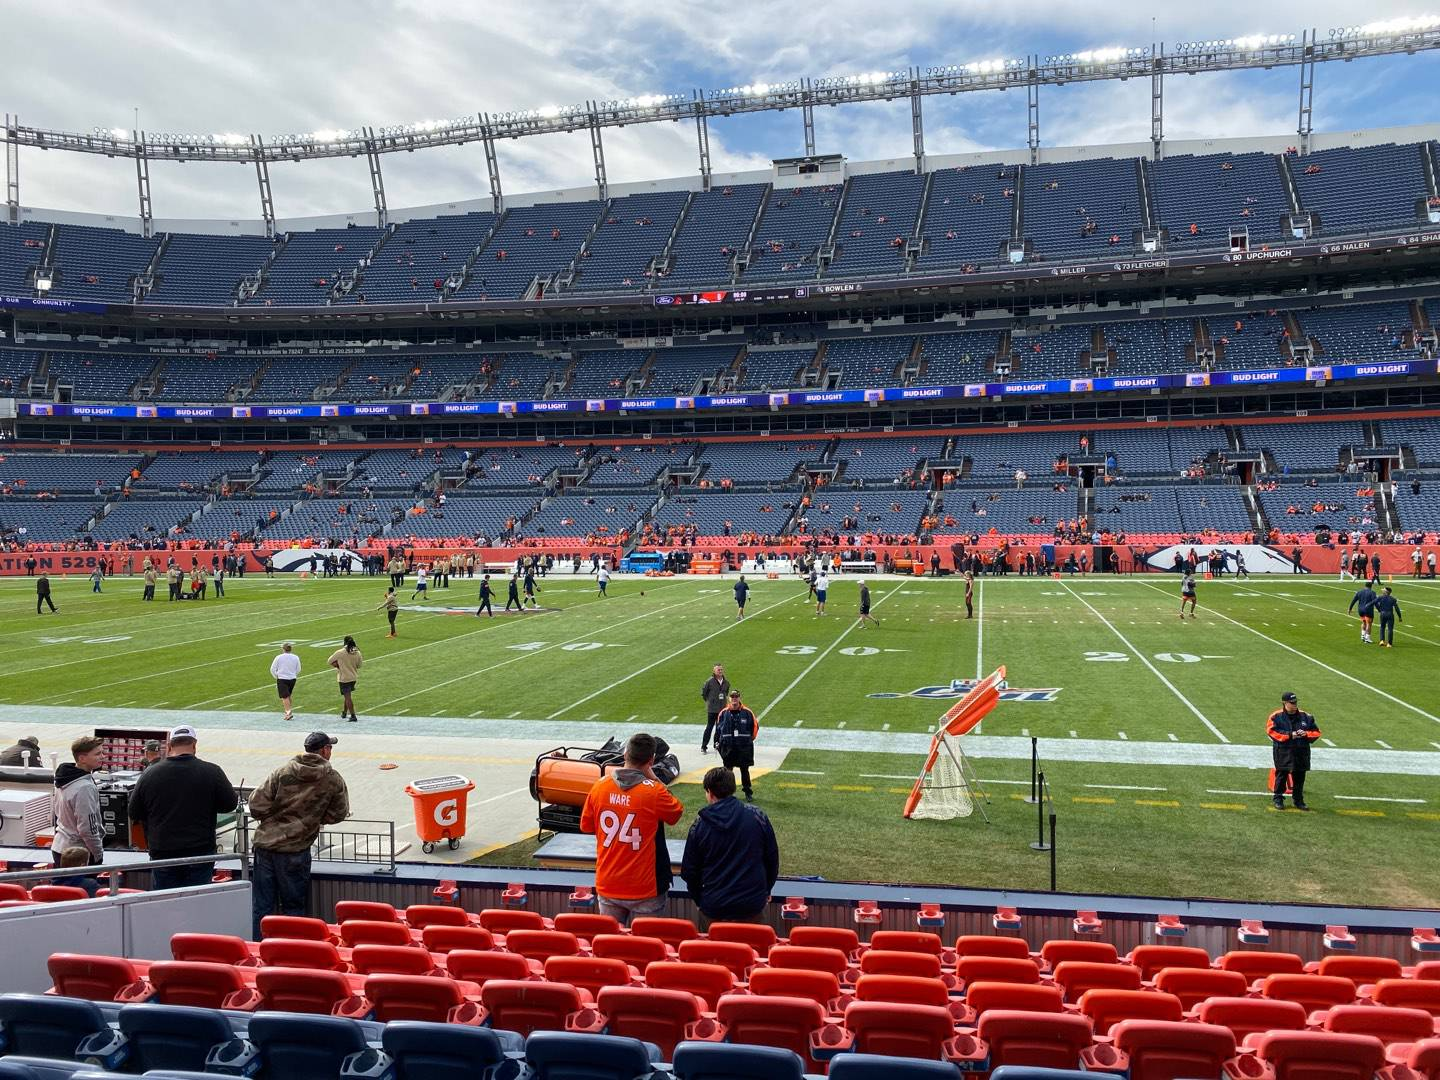 Empower Field at Mile High Stadium Section 121 Row 10 Seat 16